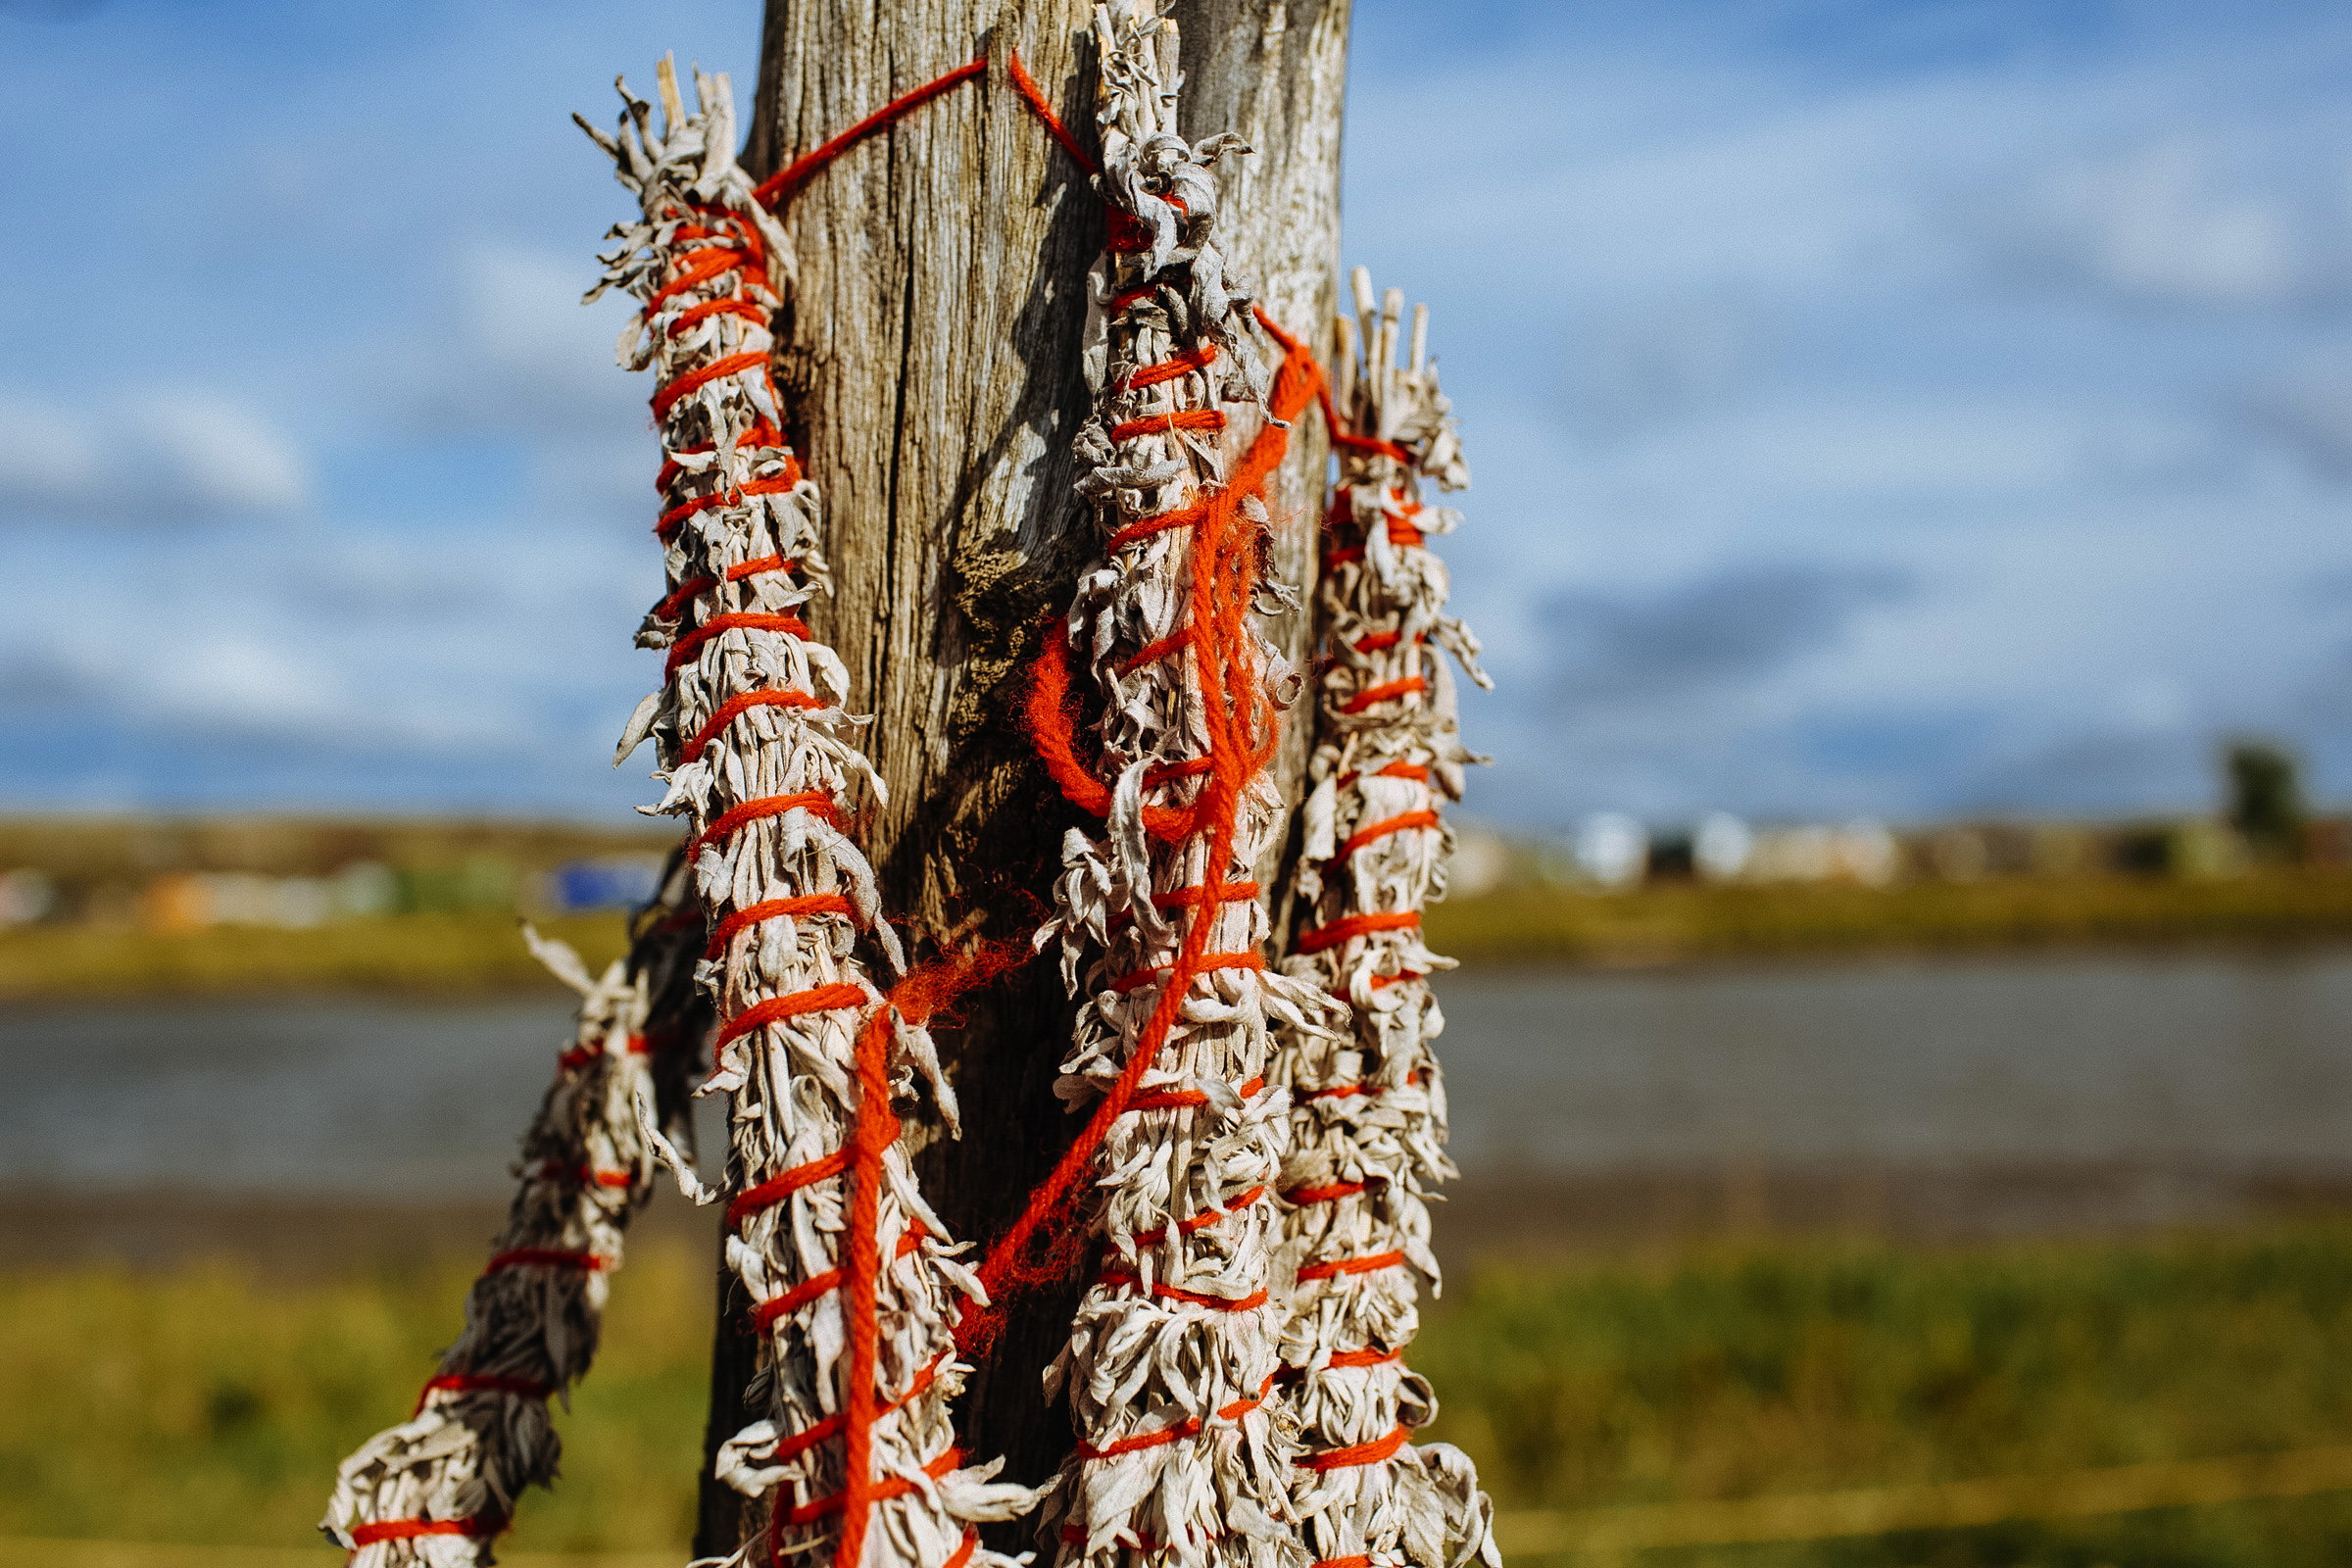 Dried sage, which plays an important role in Native American spirituality, hangs on a fence post on the banks of the Cannon Ball River overlooking the Oceti Sakowin Camp on Monday, Sept. 12, 2016. (Photo by Angus Mordant/Groundtruth)